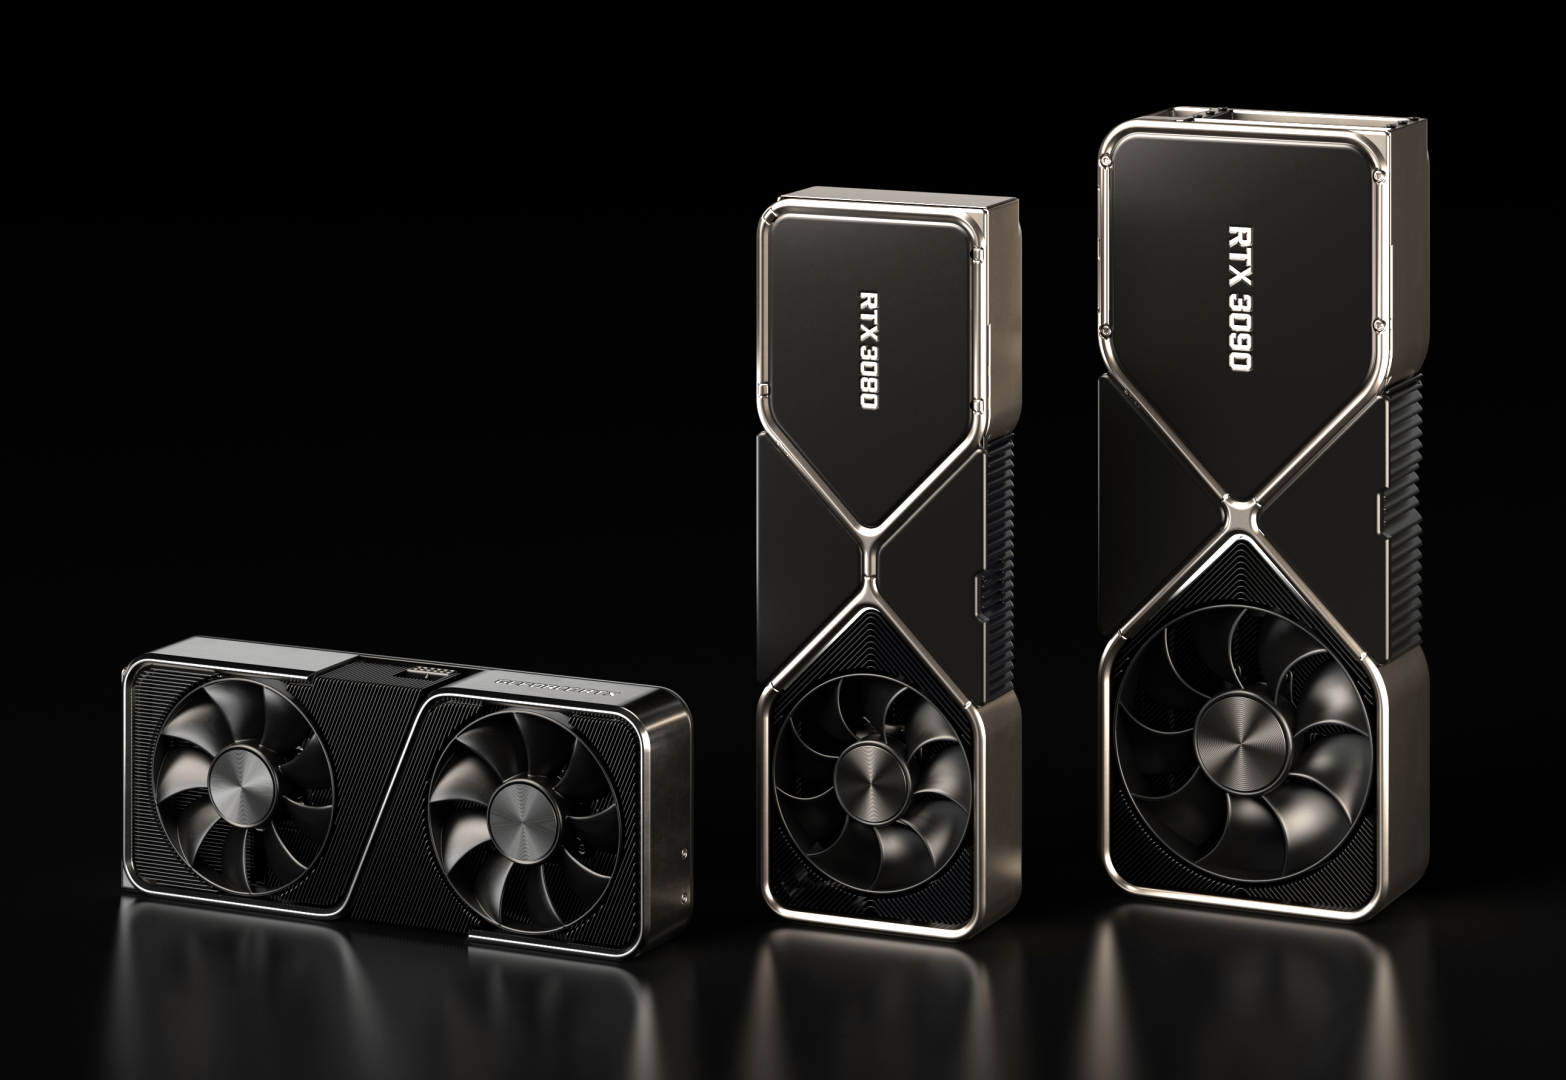 NVIDIA to bring Resizable BAR support to all RTX 30 Founders Edition cards by 'late March'; AIBs will issue VBIOS updates too, but initial performance benefits will be minimal